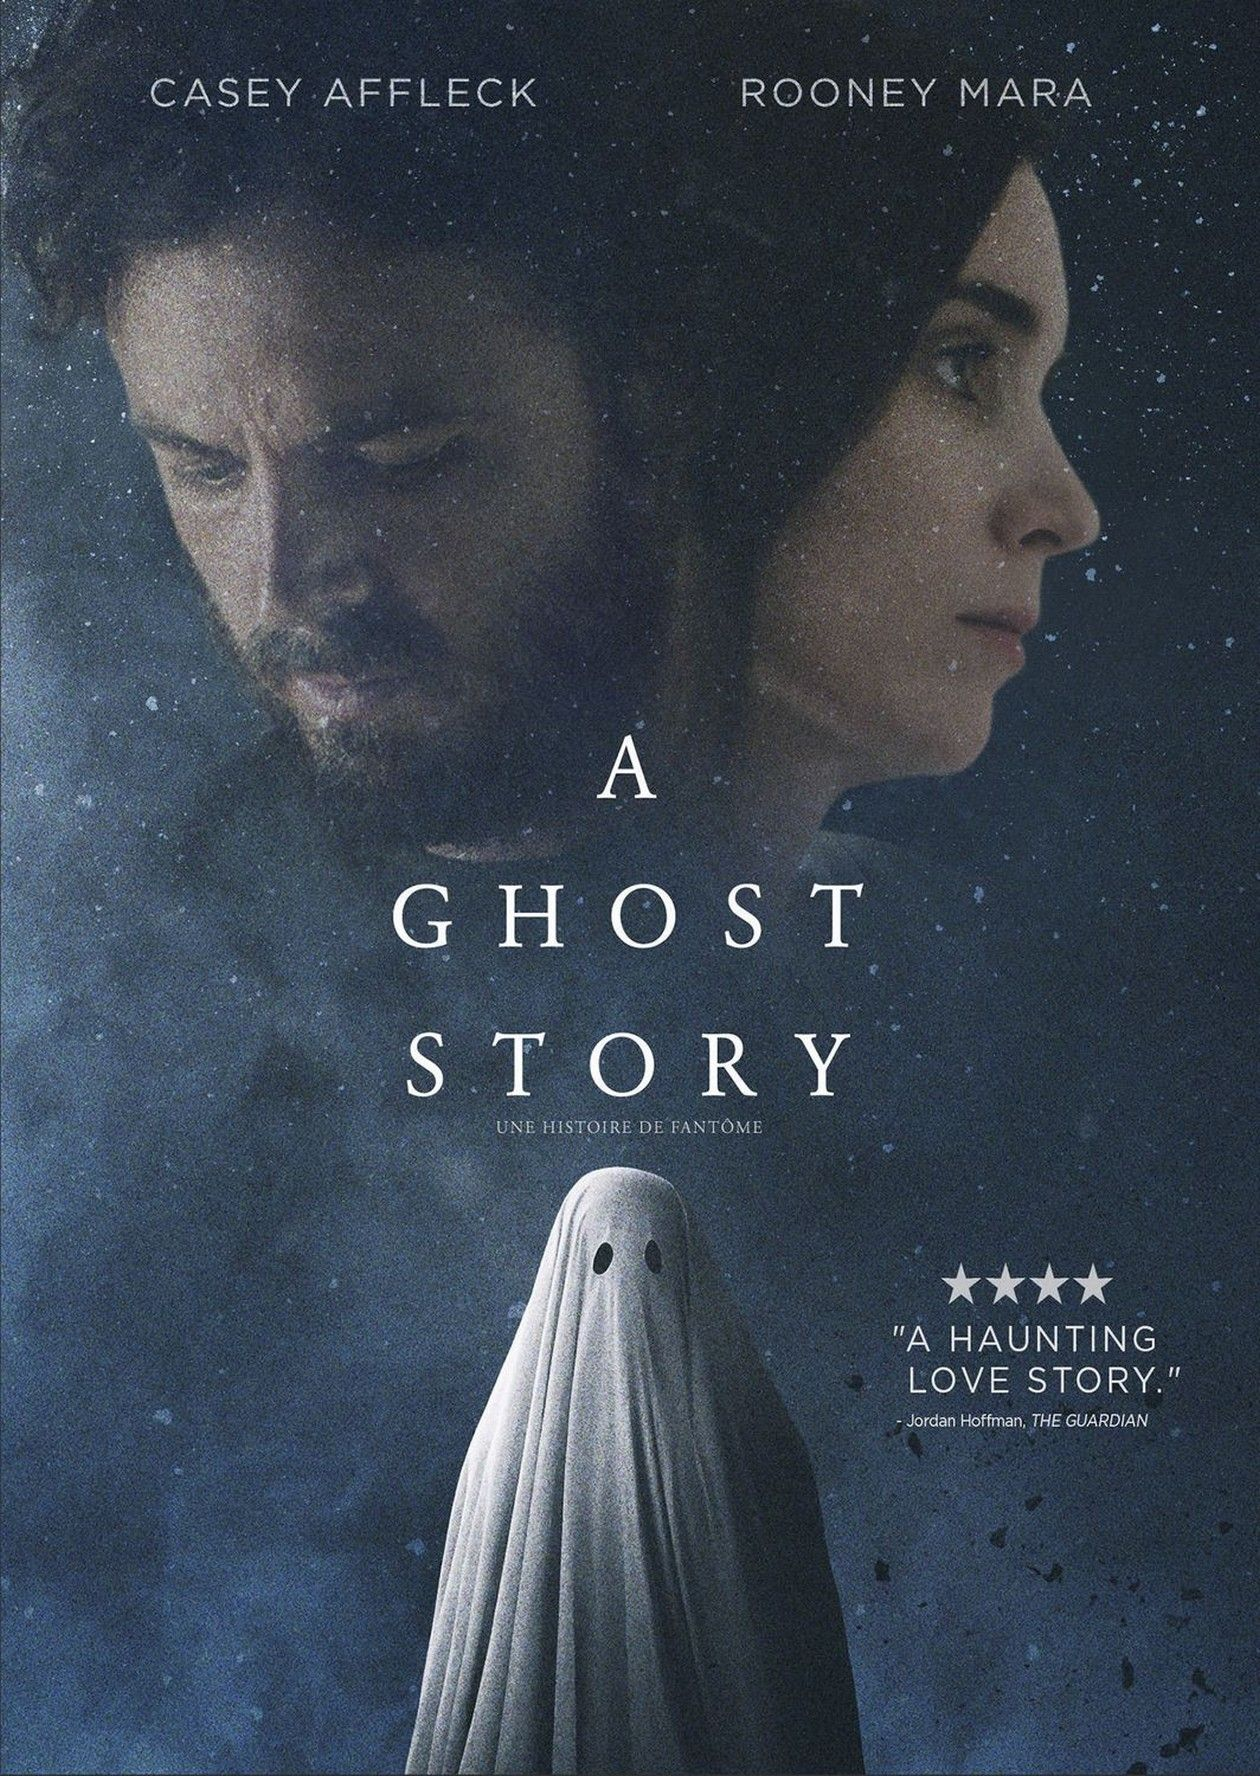 Rooney Mara | A Ghost Story | David Lowery 2017 Movie Poster Affiche film